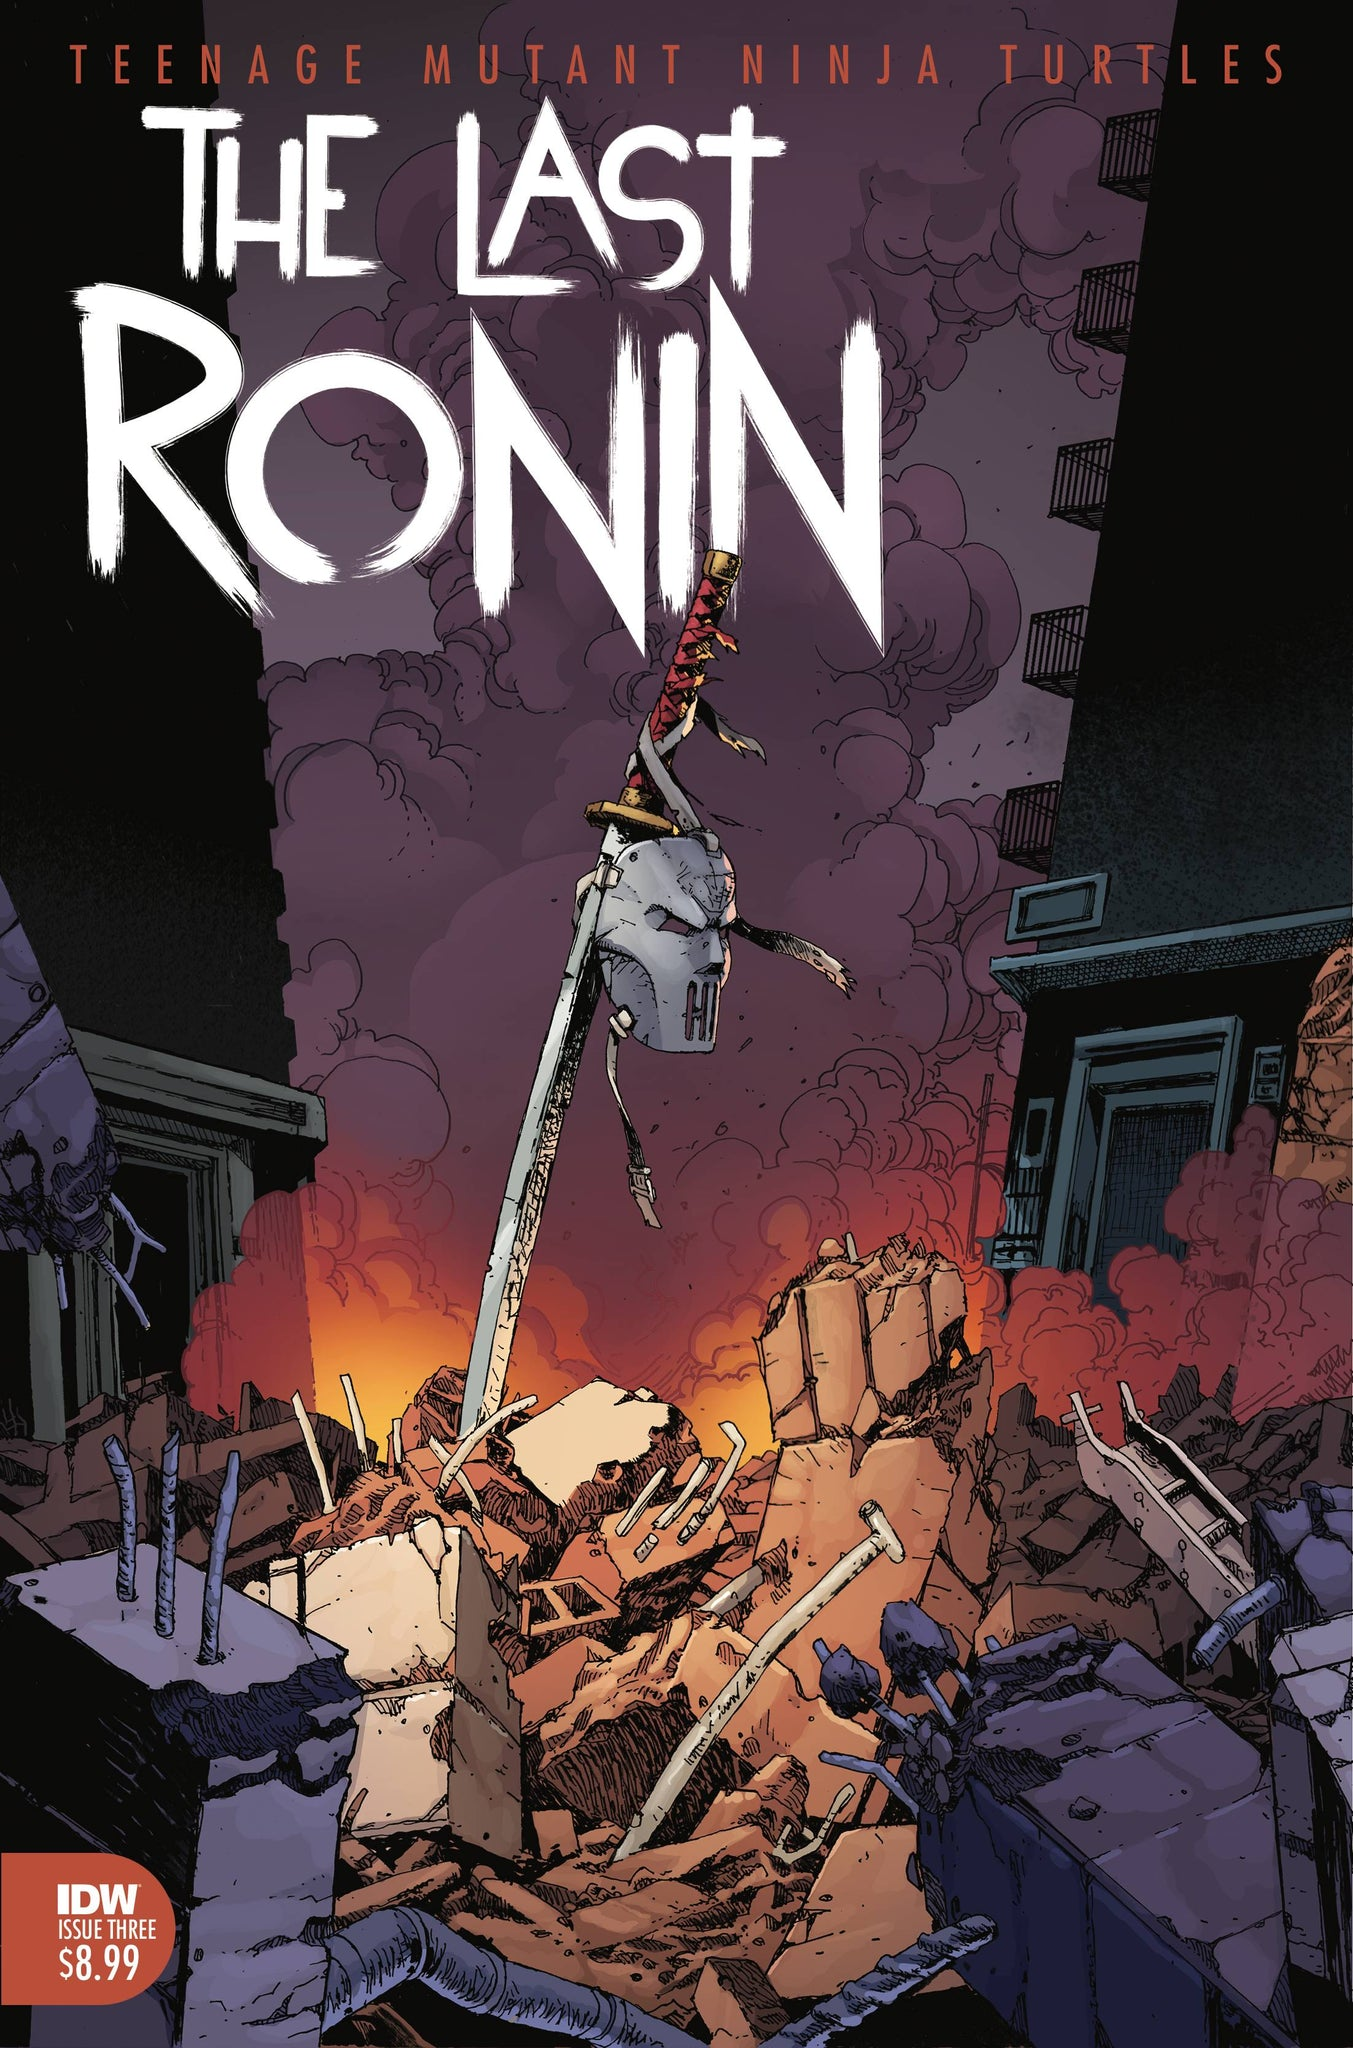 TMNT The Last Ronin #3 (of 5) - PREORDER